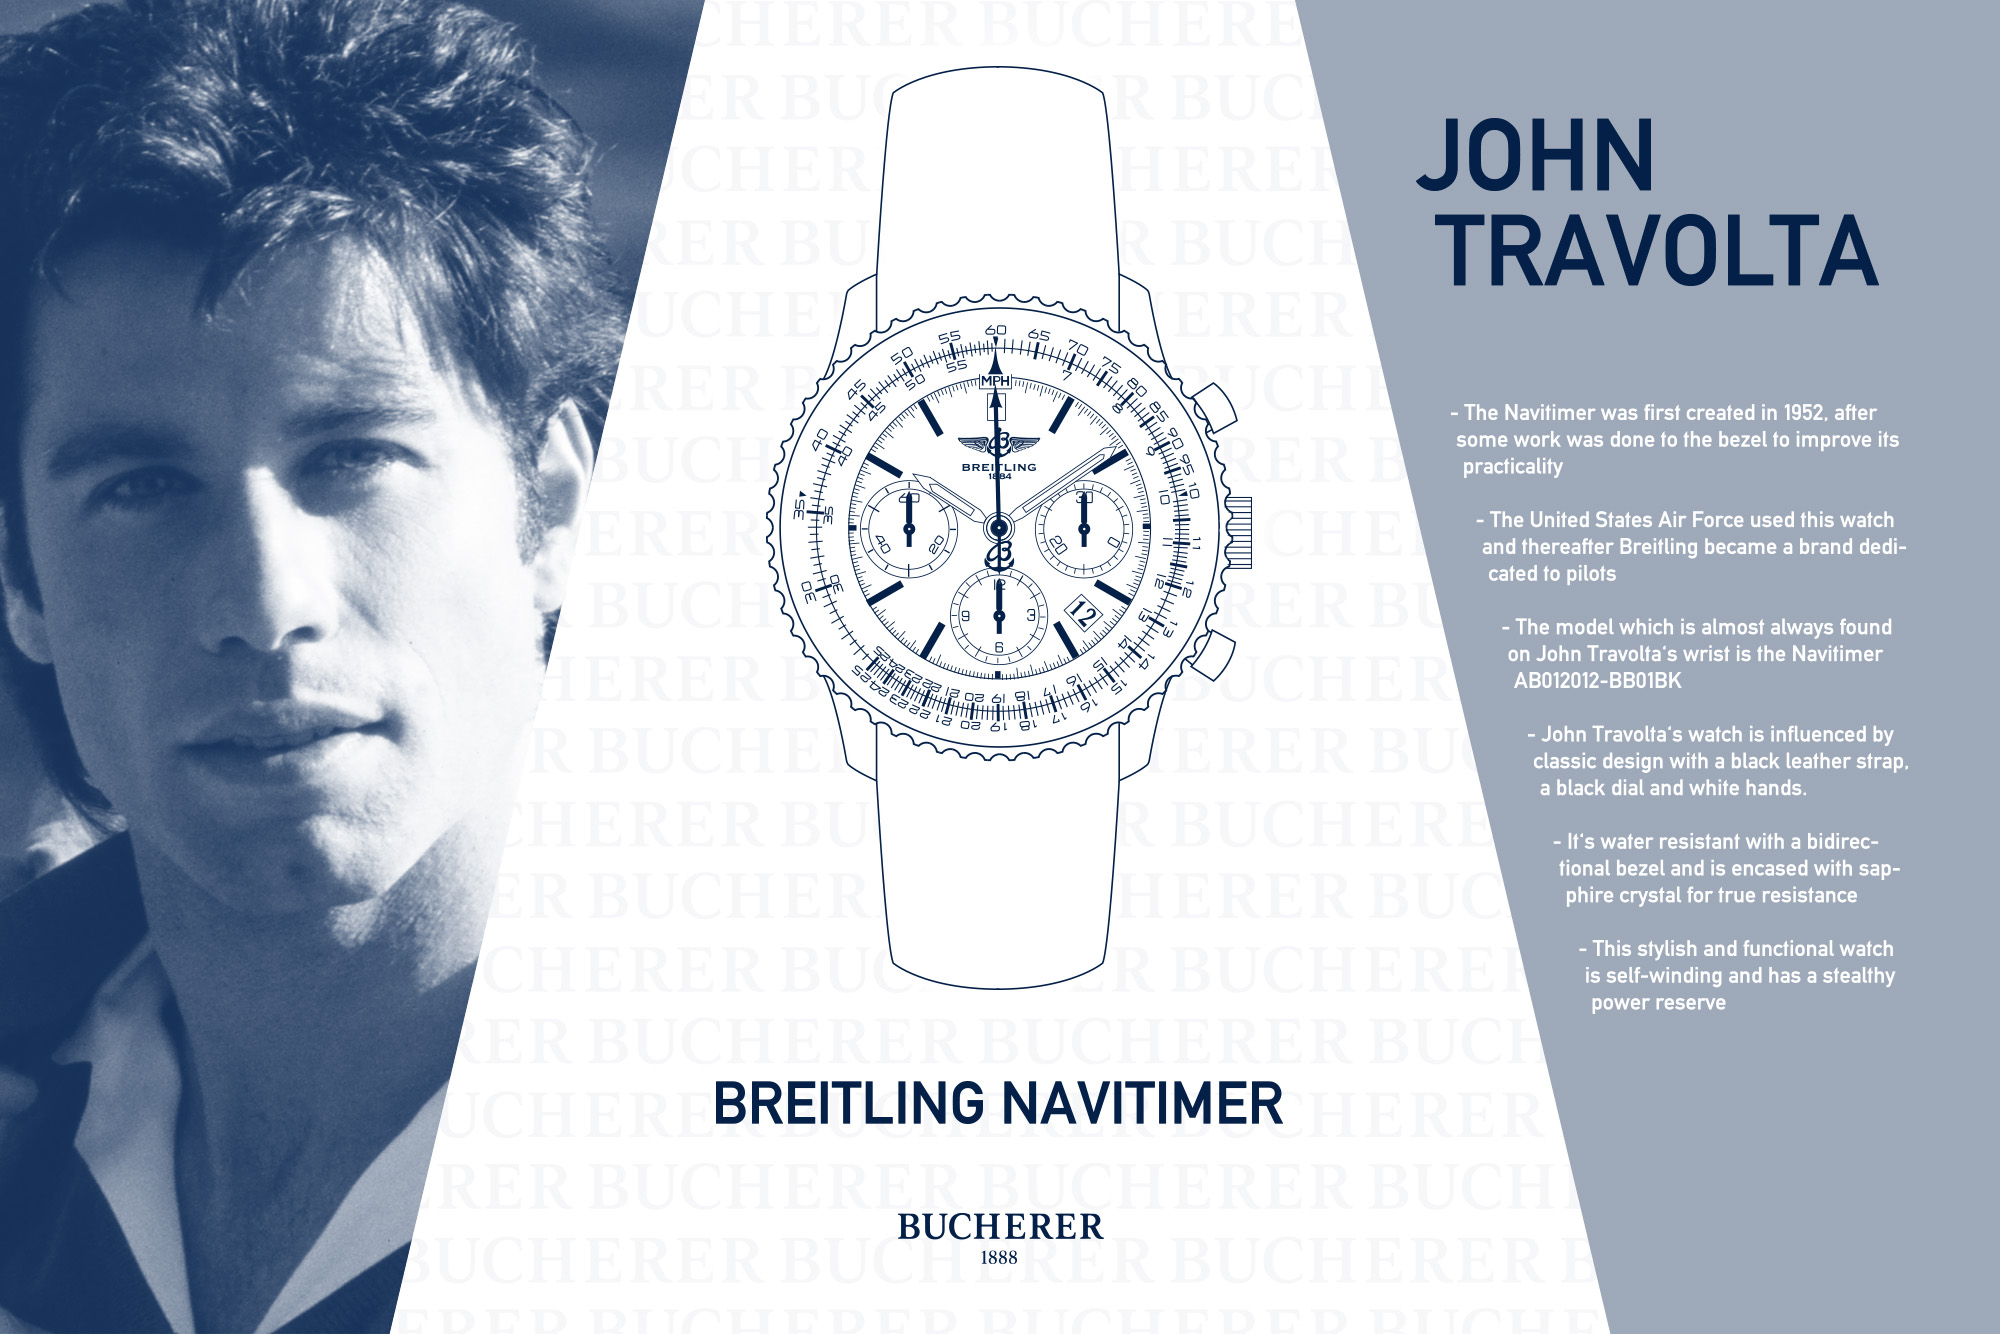 john-travolta-and-his-favourite-breitling-watch-the-navitimer